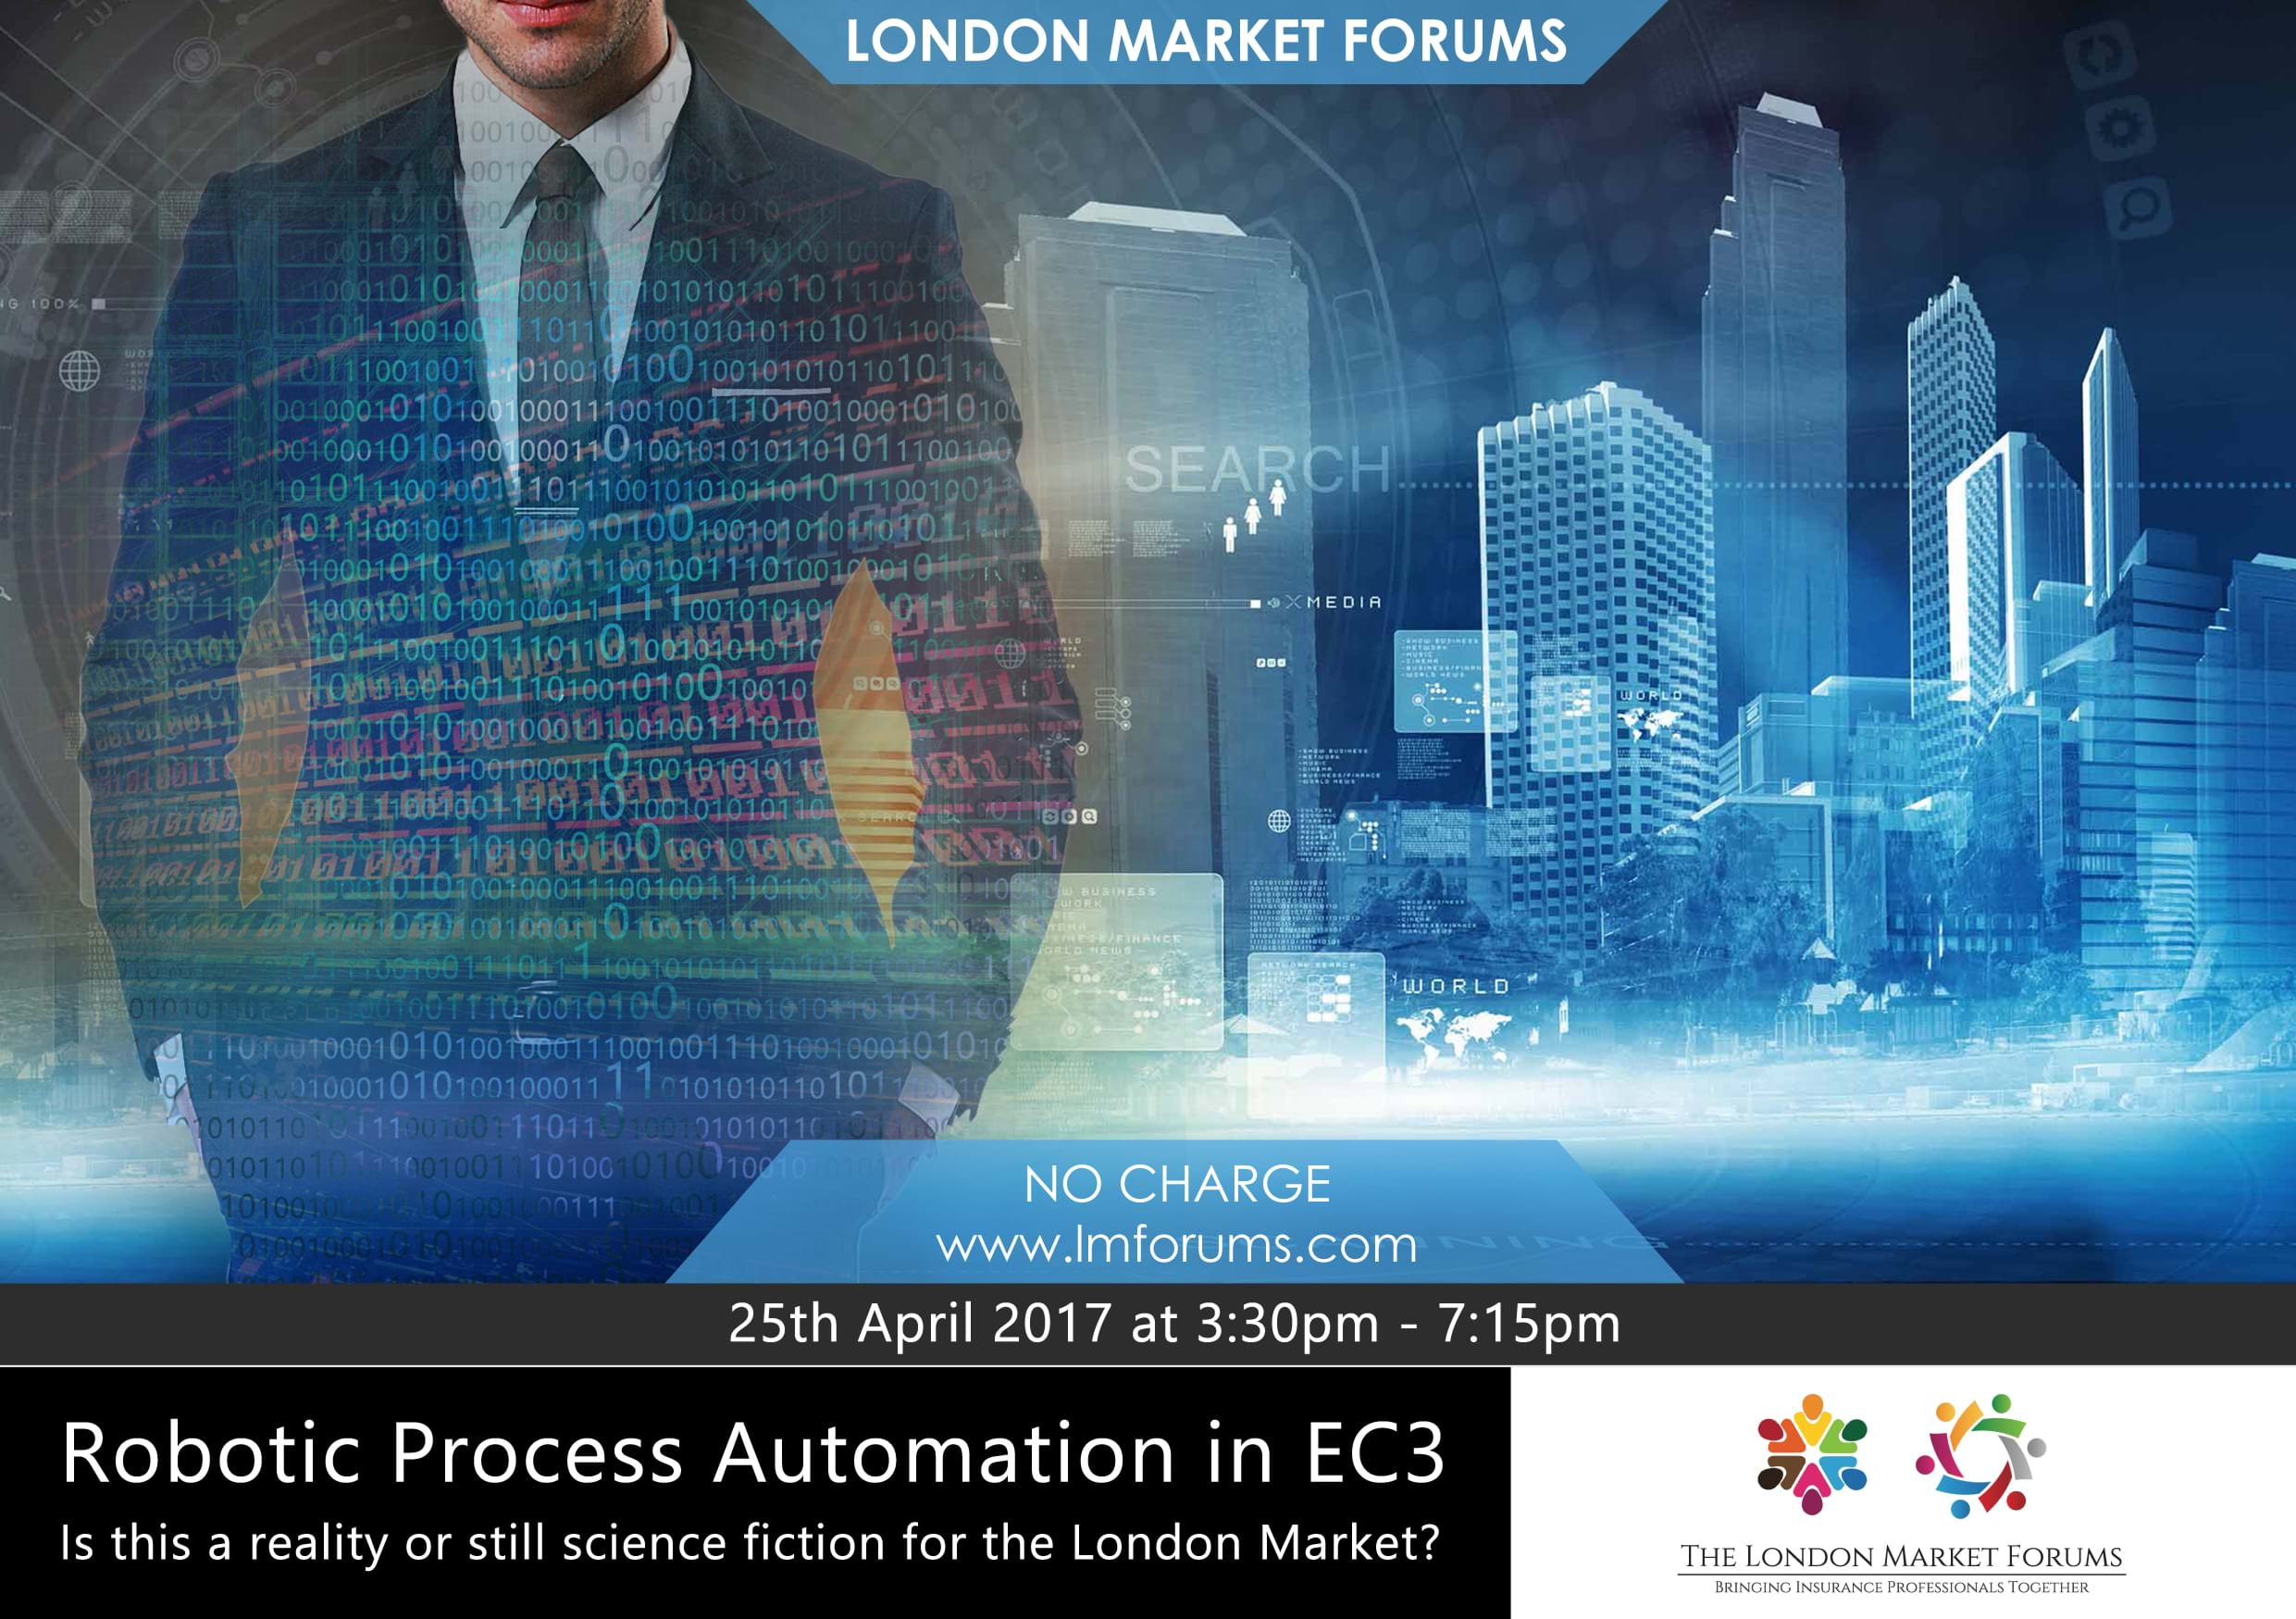 Robotic Process Automation - Is this a reality or still science fiction for the London Market?